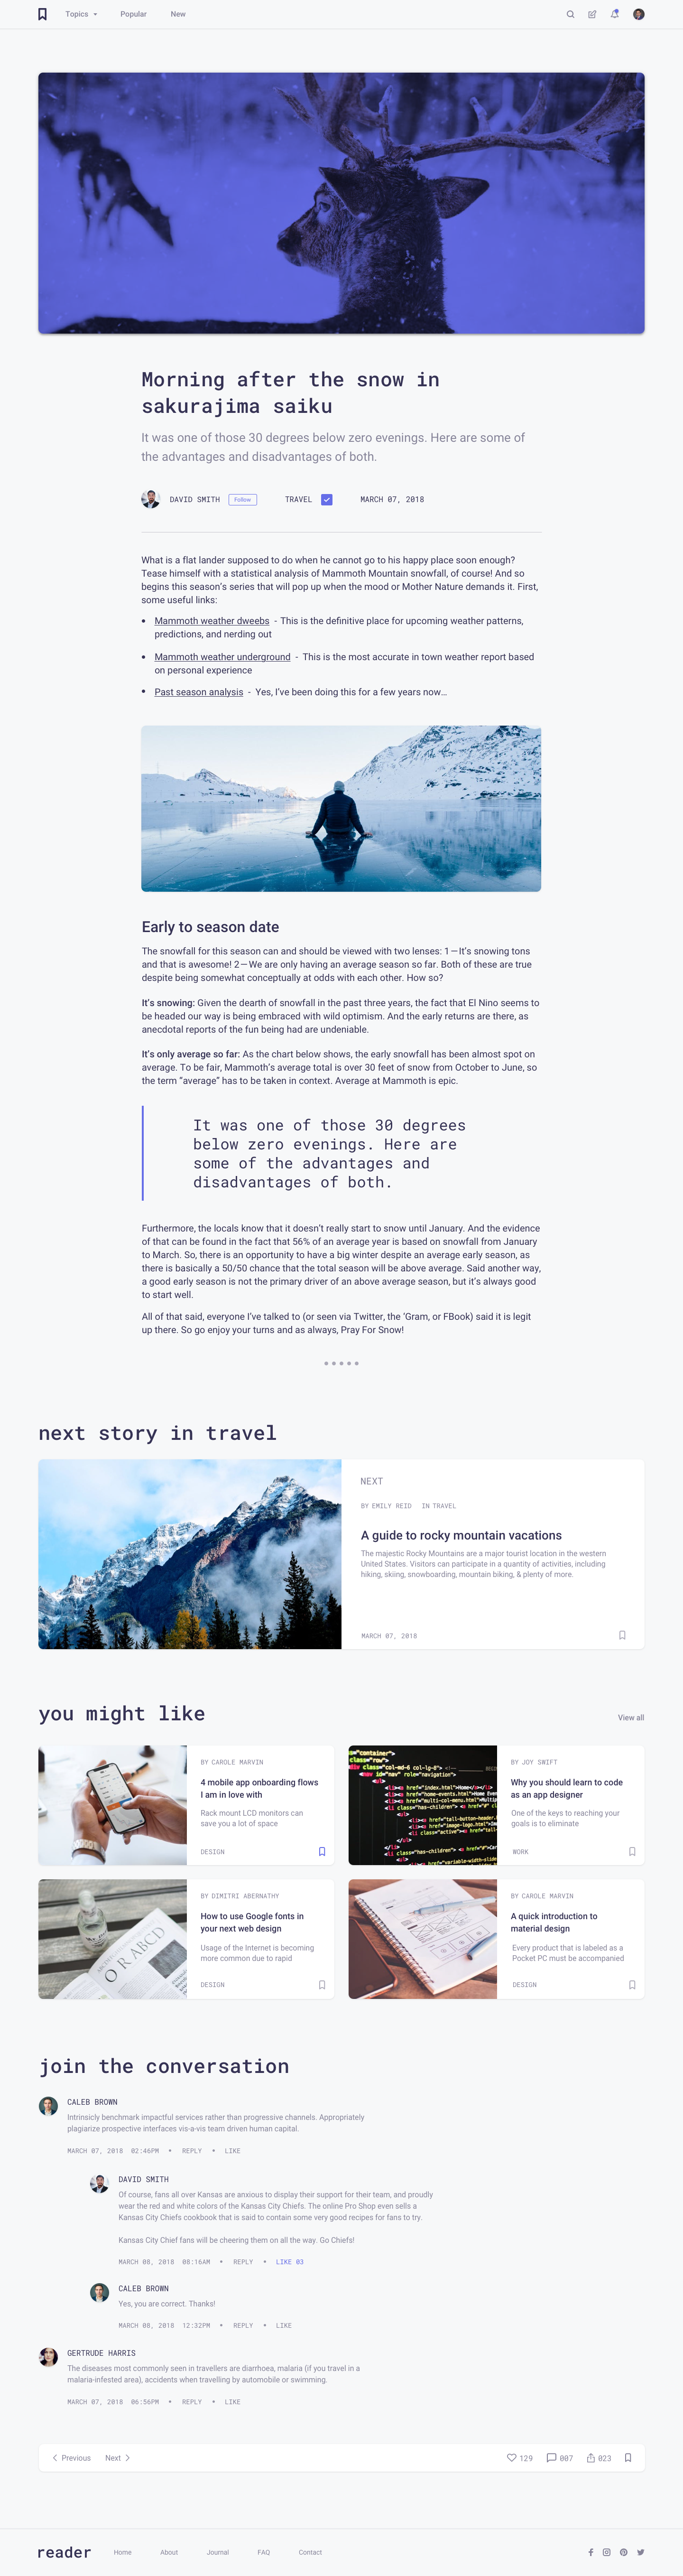 Dribbble preview 3   read story